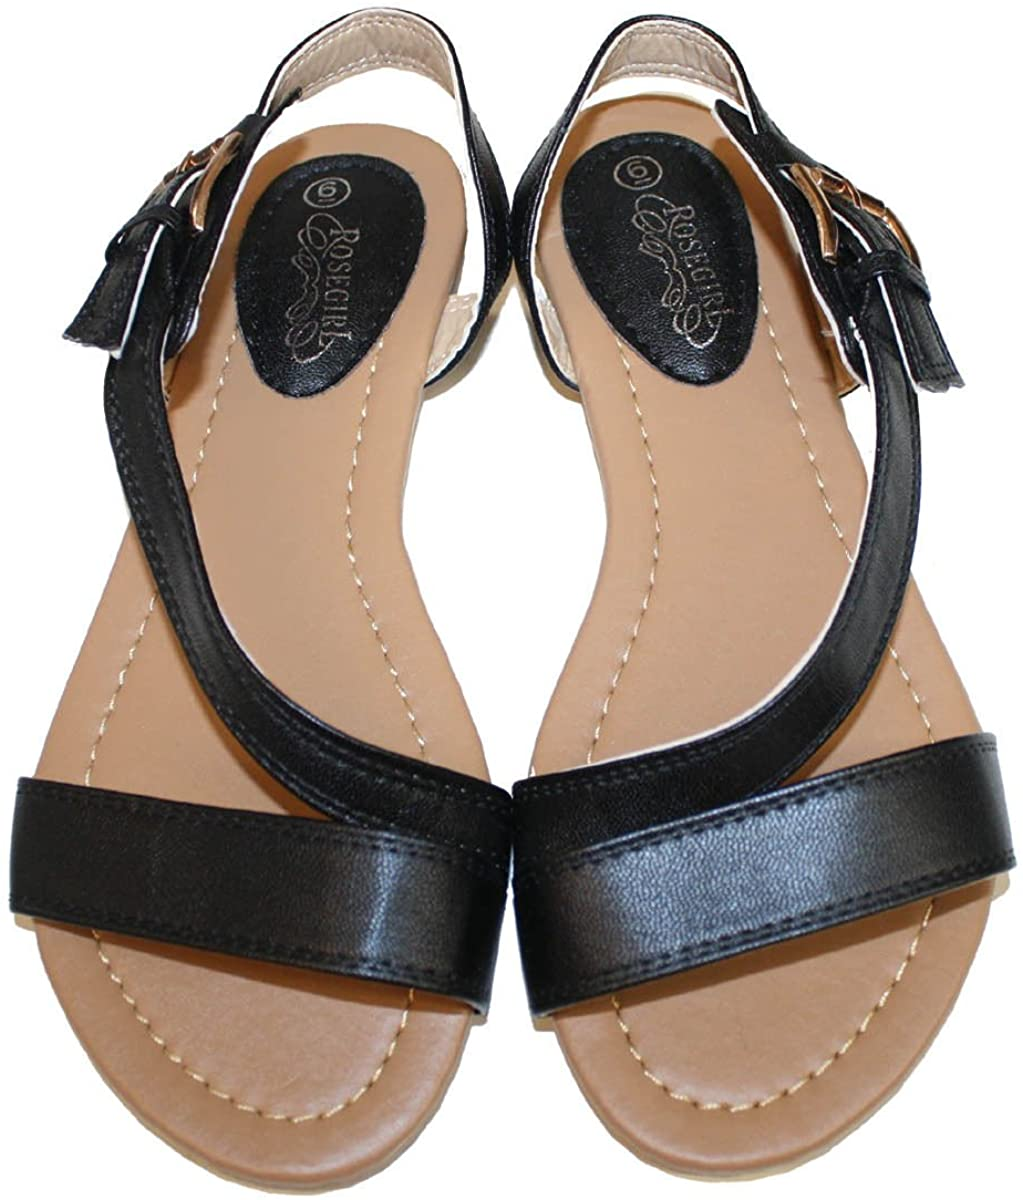 Womens Summer Gladiator Sandals Flats FashionThongs T Straps Ladies Shoes